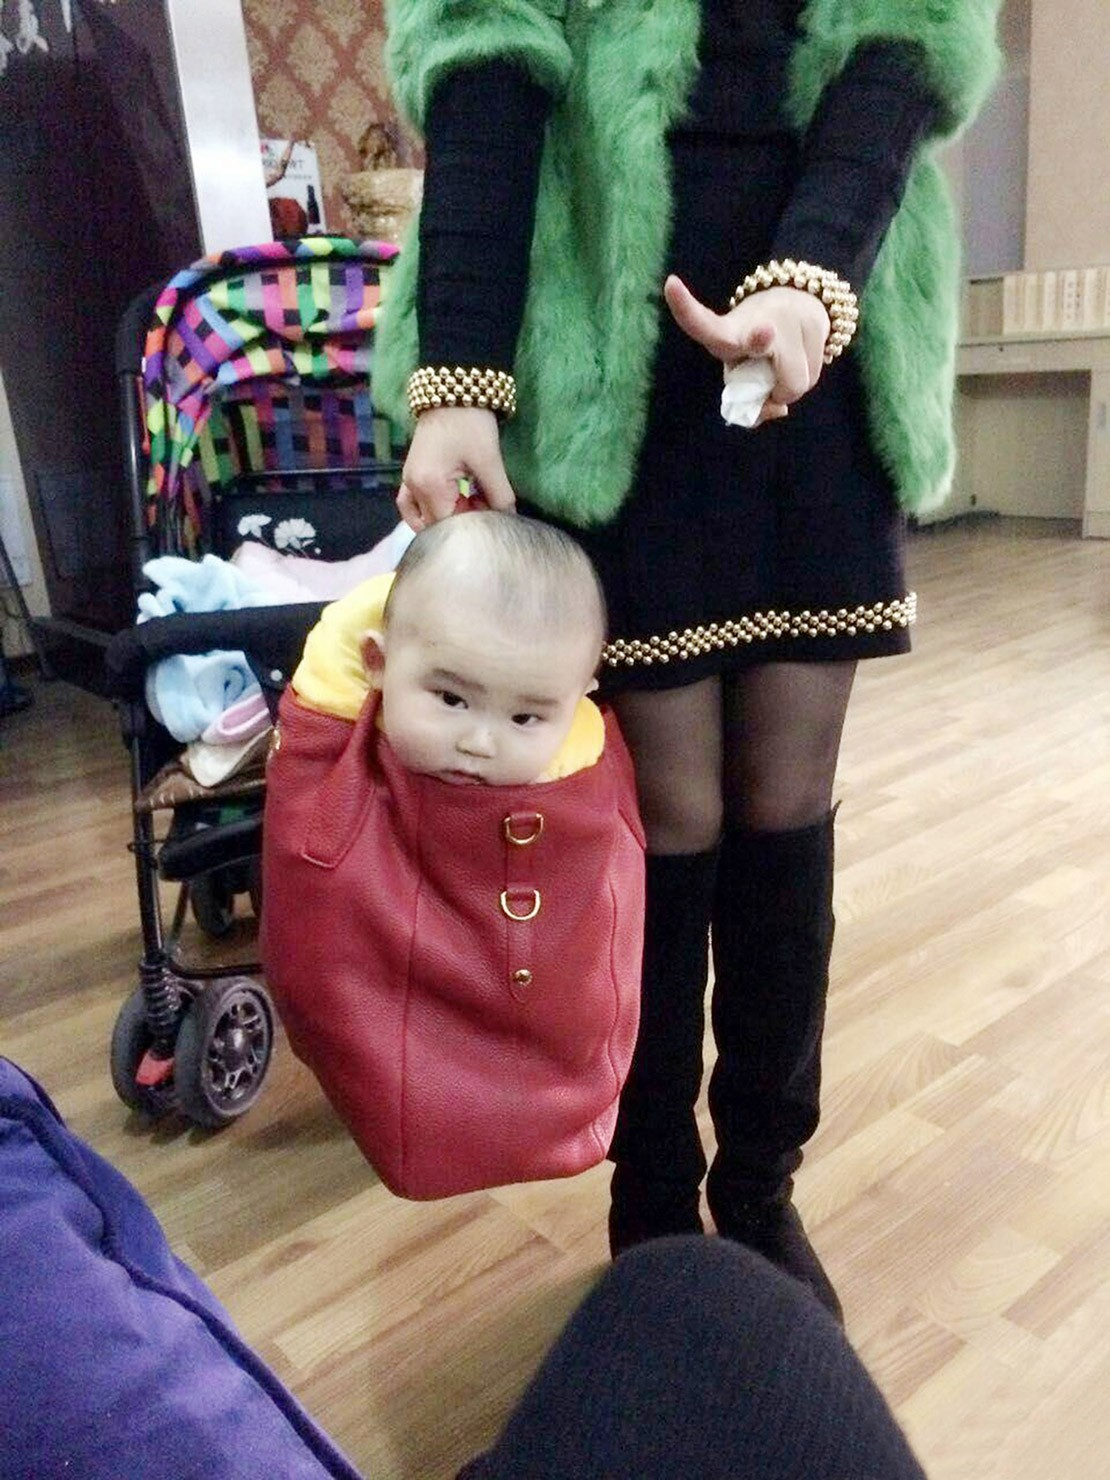 outrage-after-mum-carries-baby-in-handbag_82494